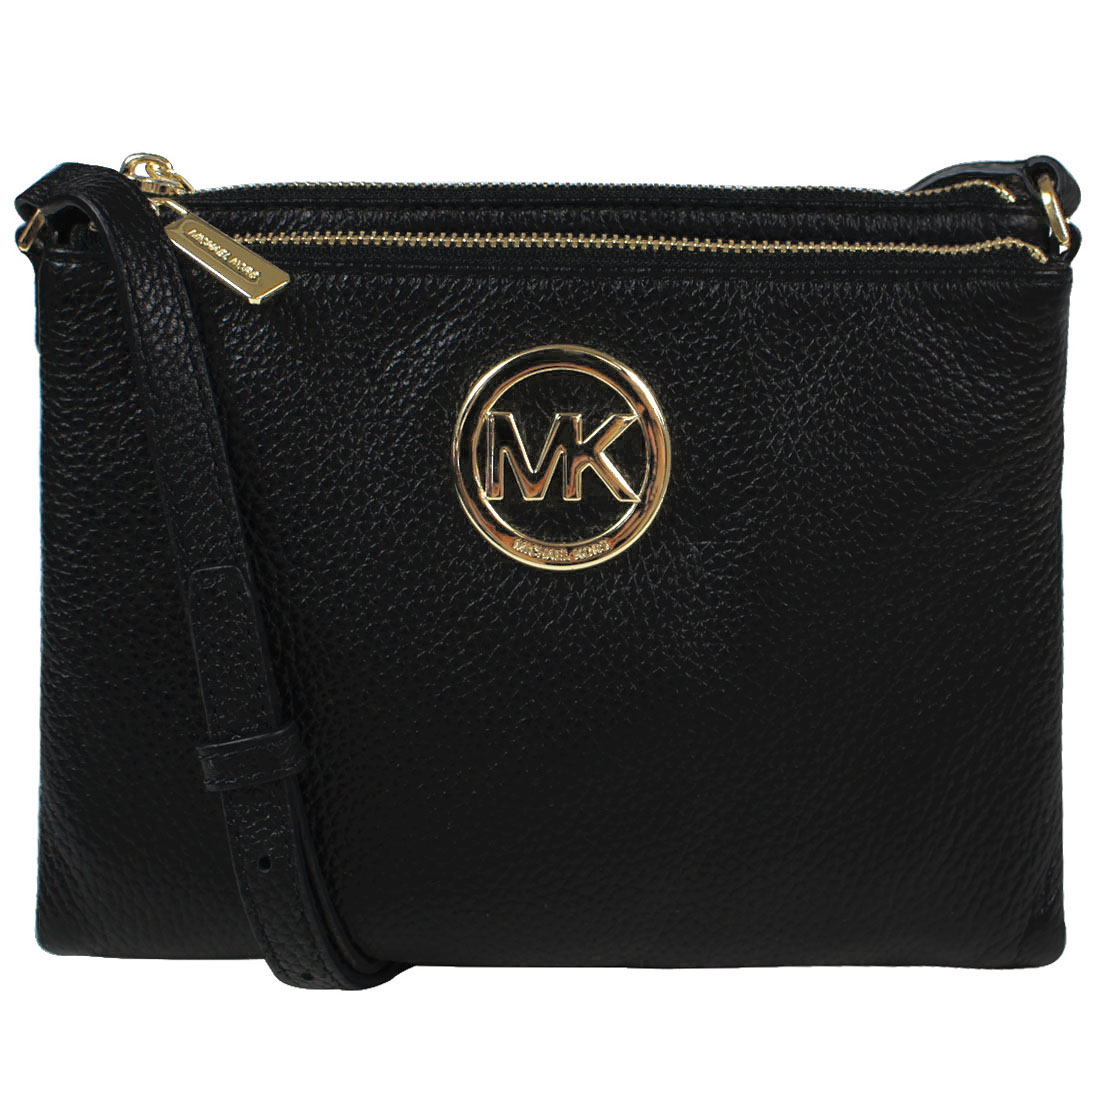 Michael Kors Fulton Leather East West Crossbody Bag Black # 35T6GFTC7L